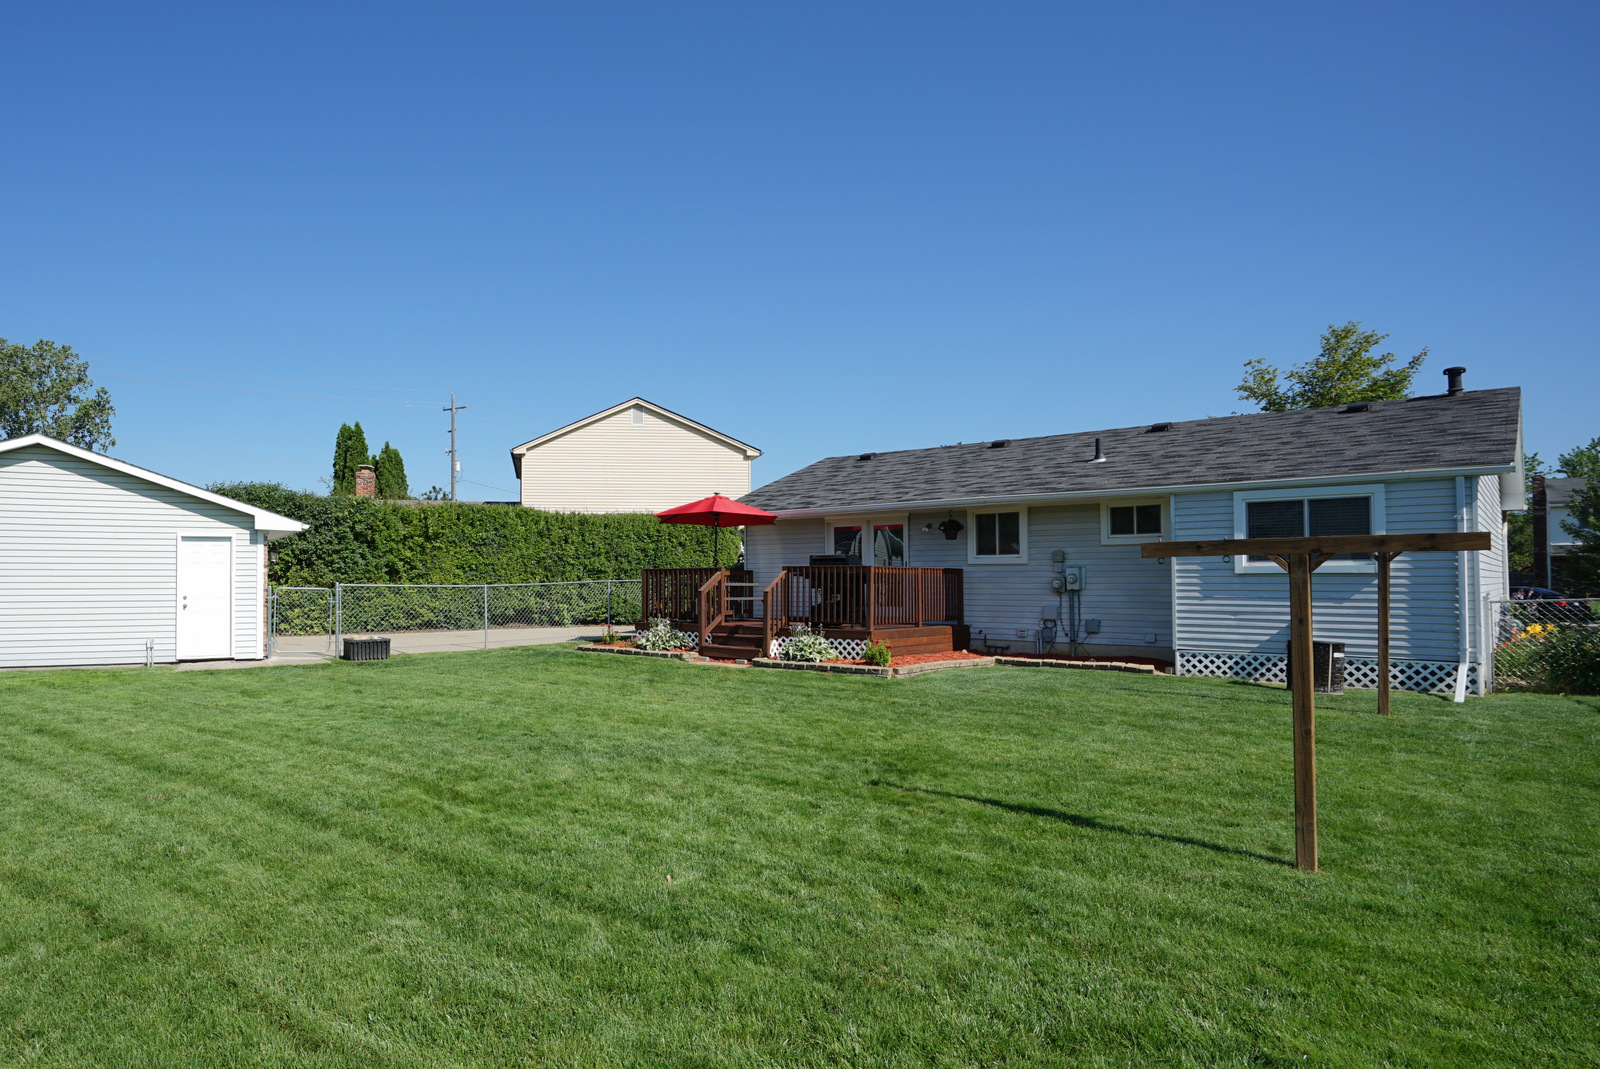 Just Sold 43919 Marne Court Updated 3 Bedroom 2 Bath